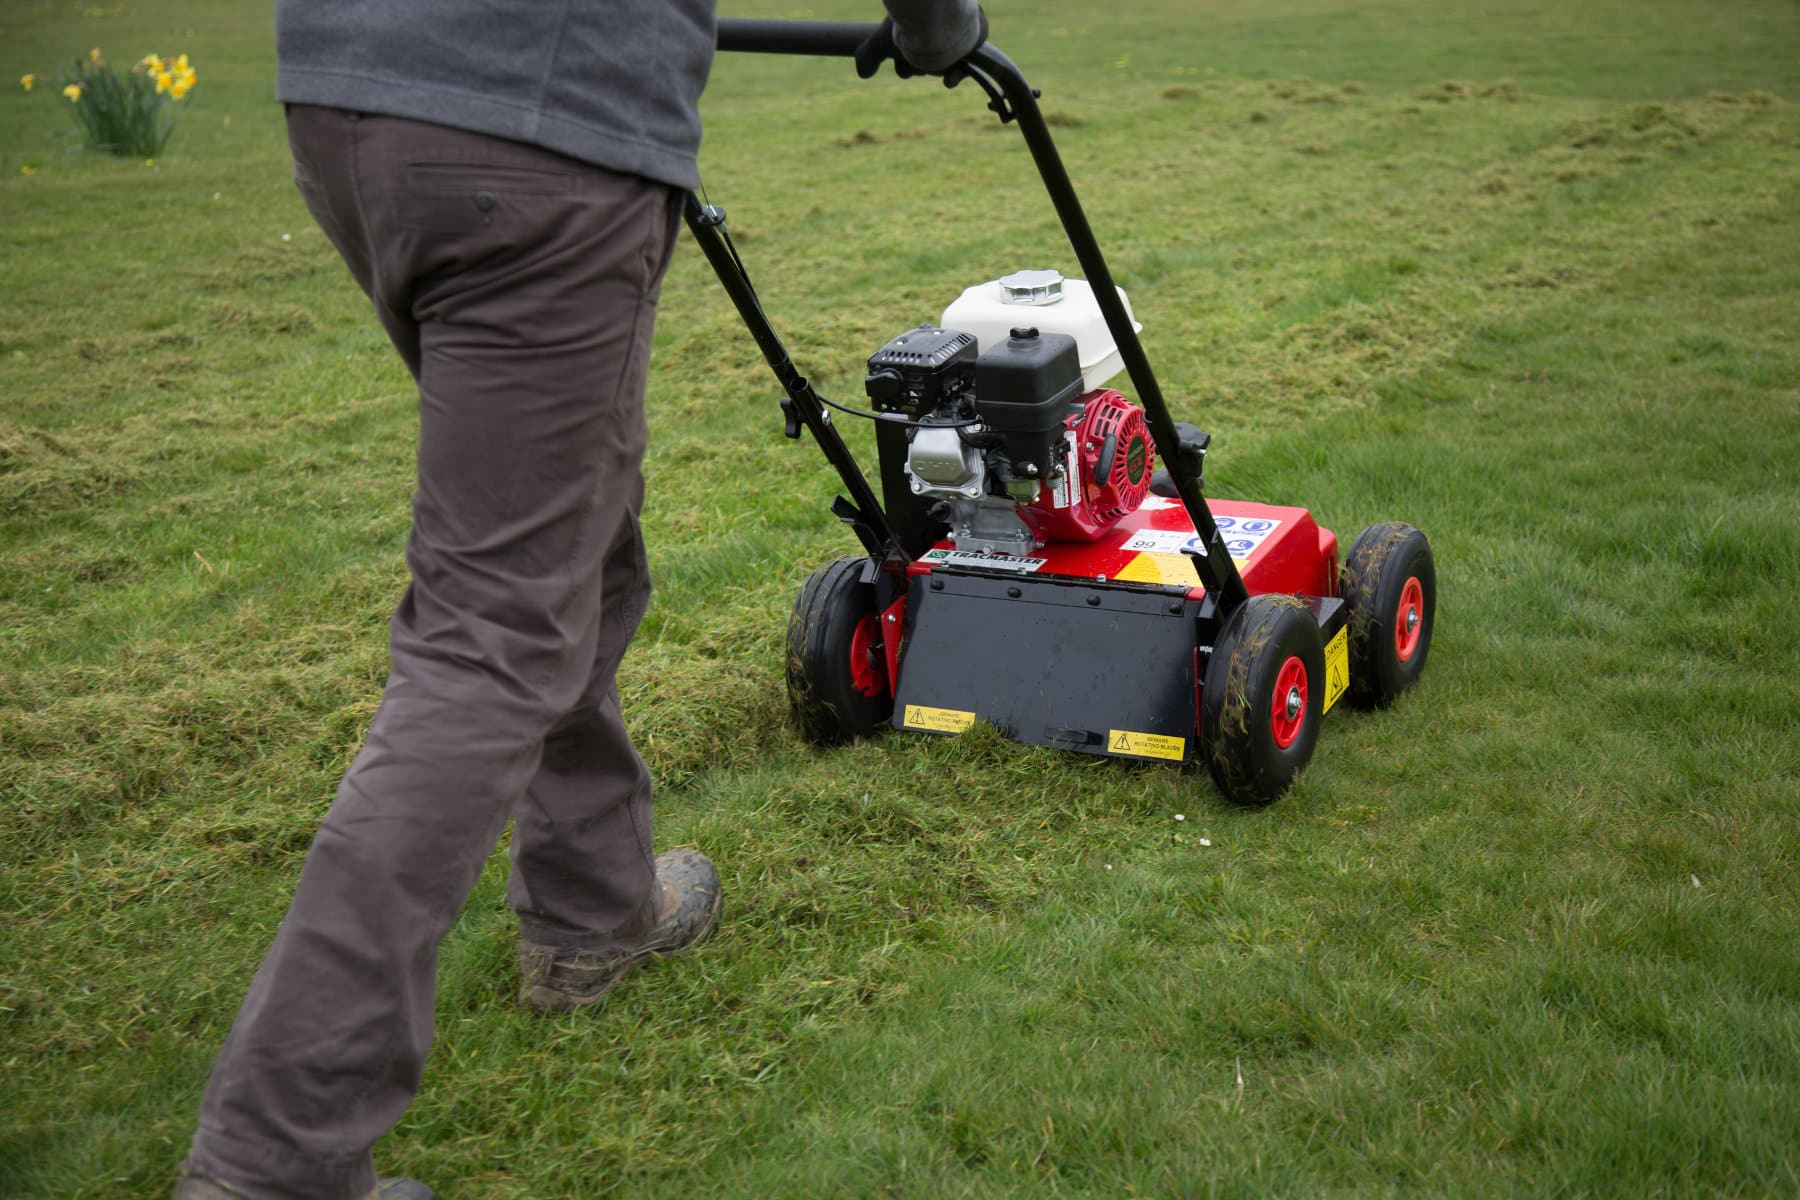 Lawn Scarifier Buying Guide